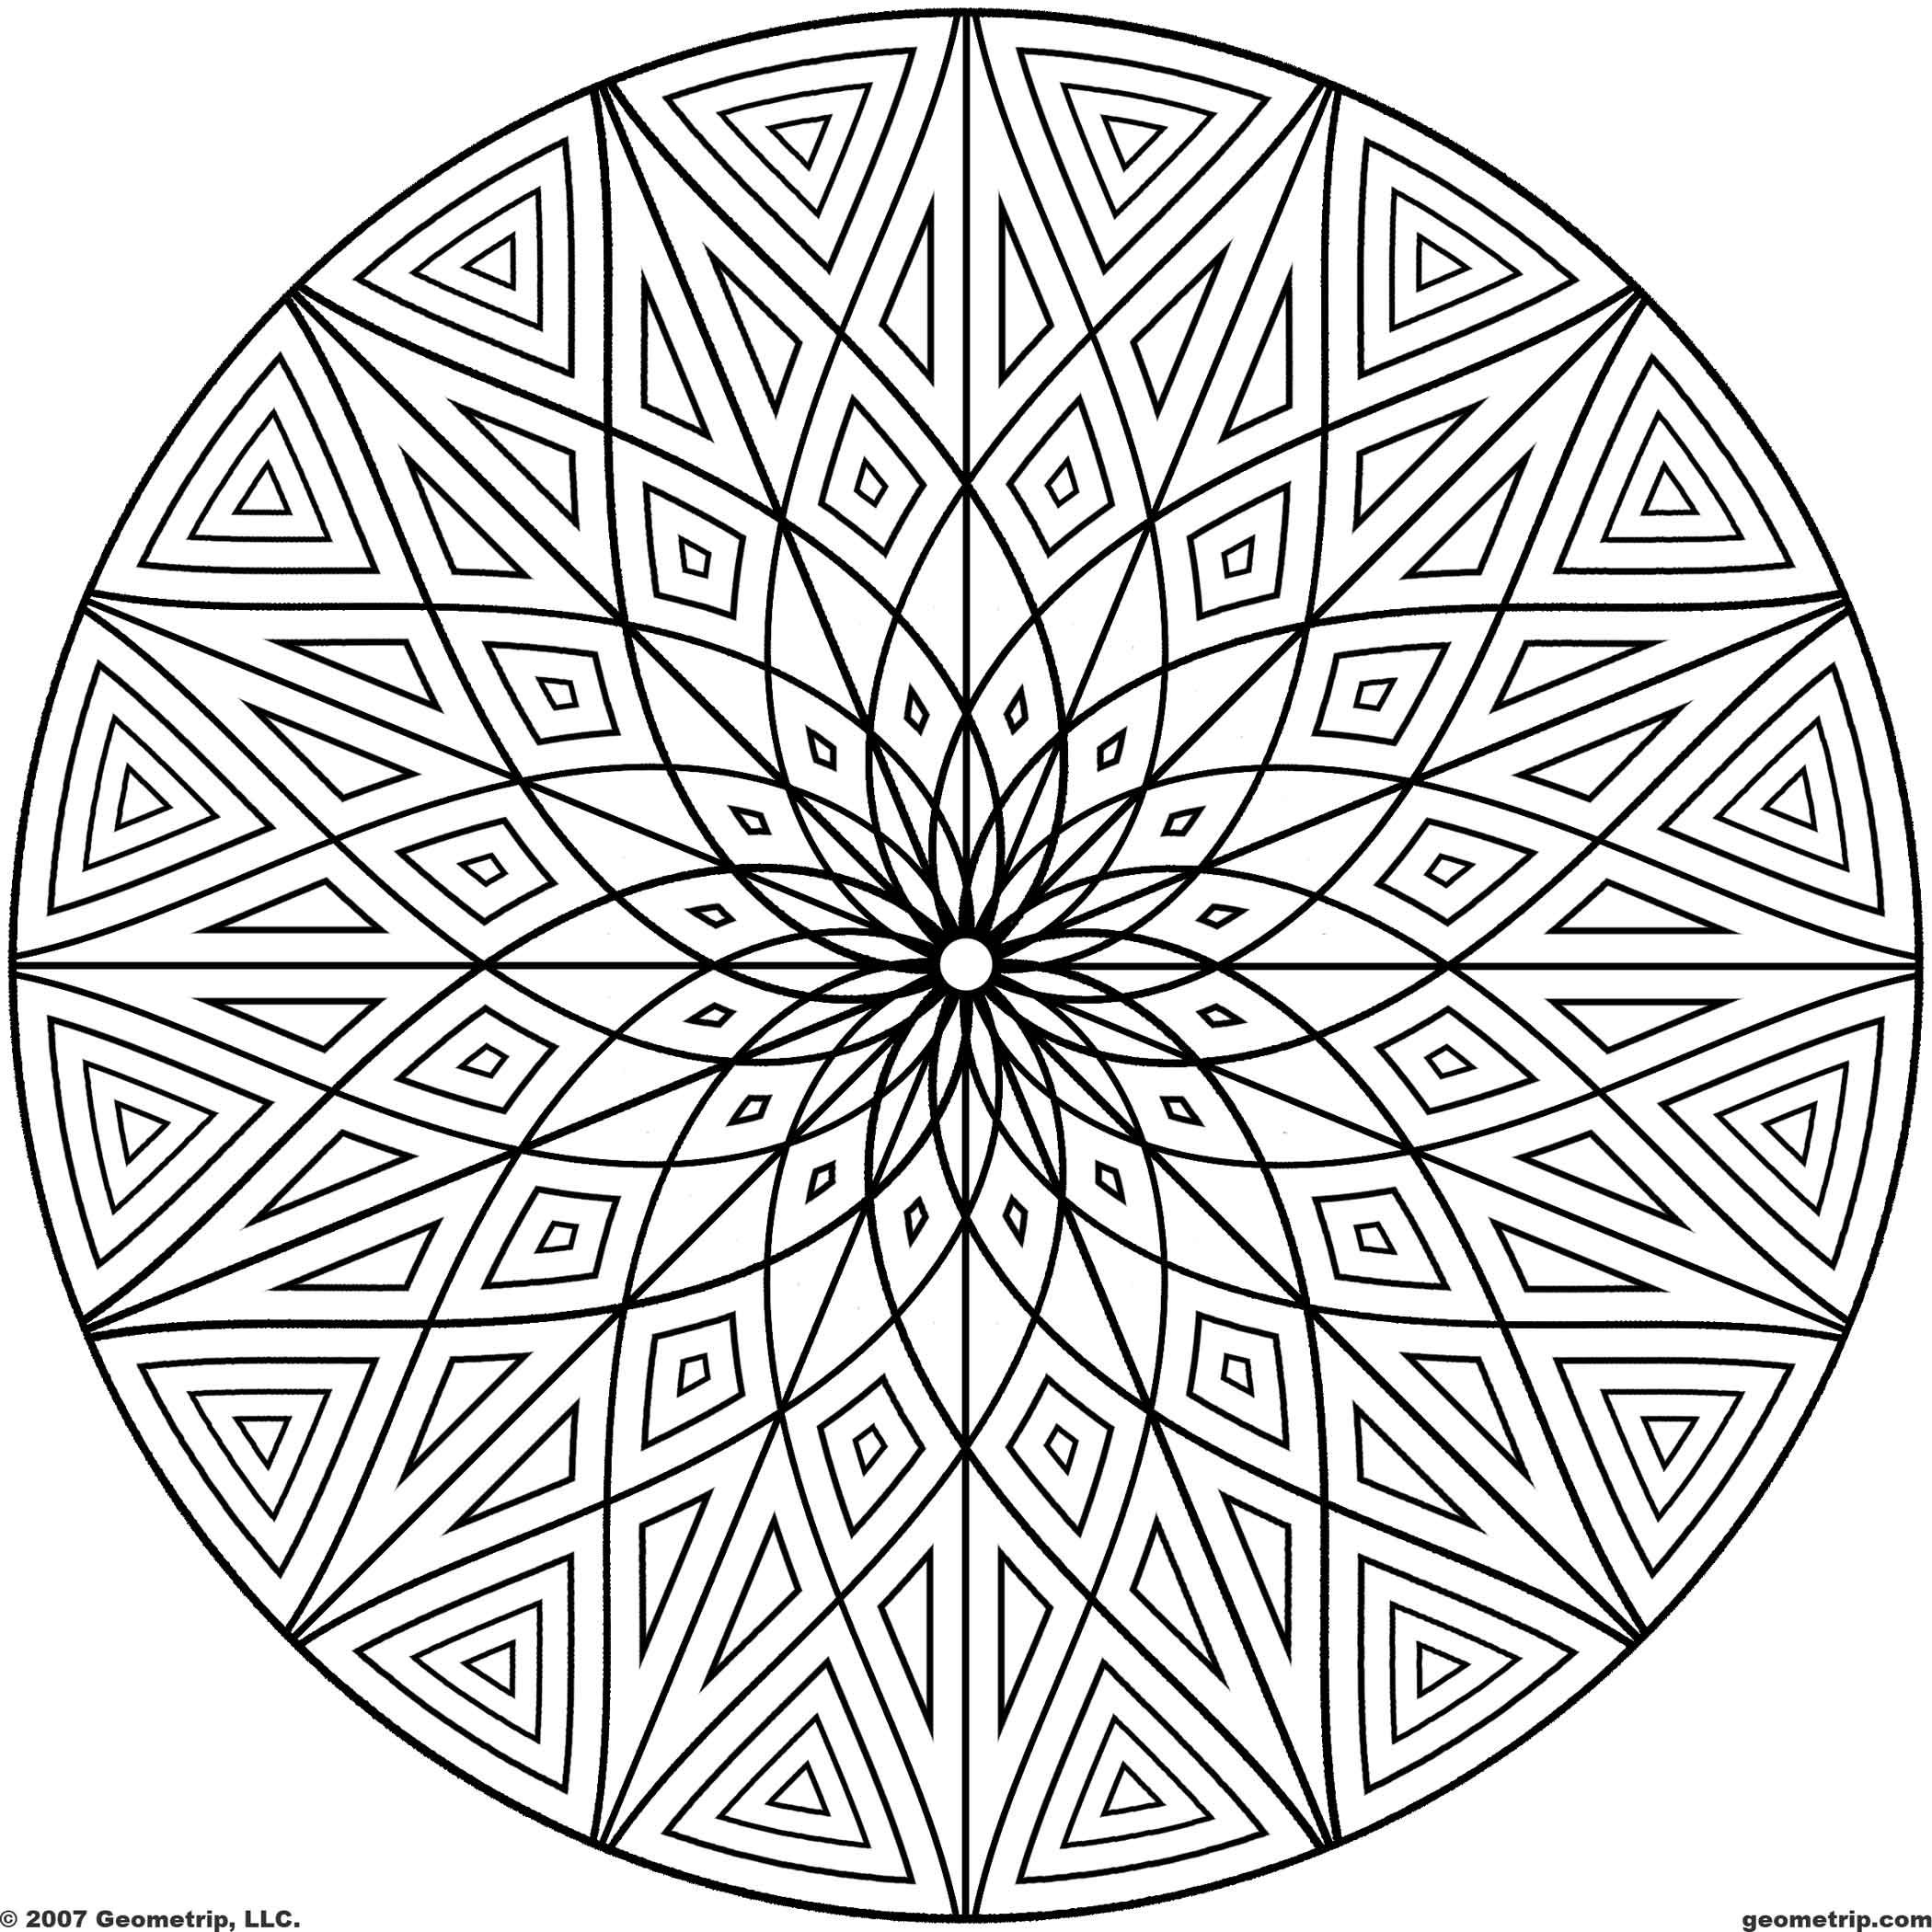 cool patterns to colour in coloring pages coloring pages terrific cool coloring patterns colour cool to in